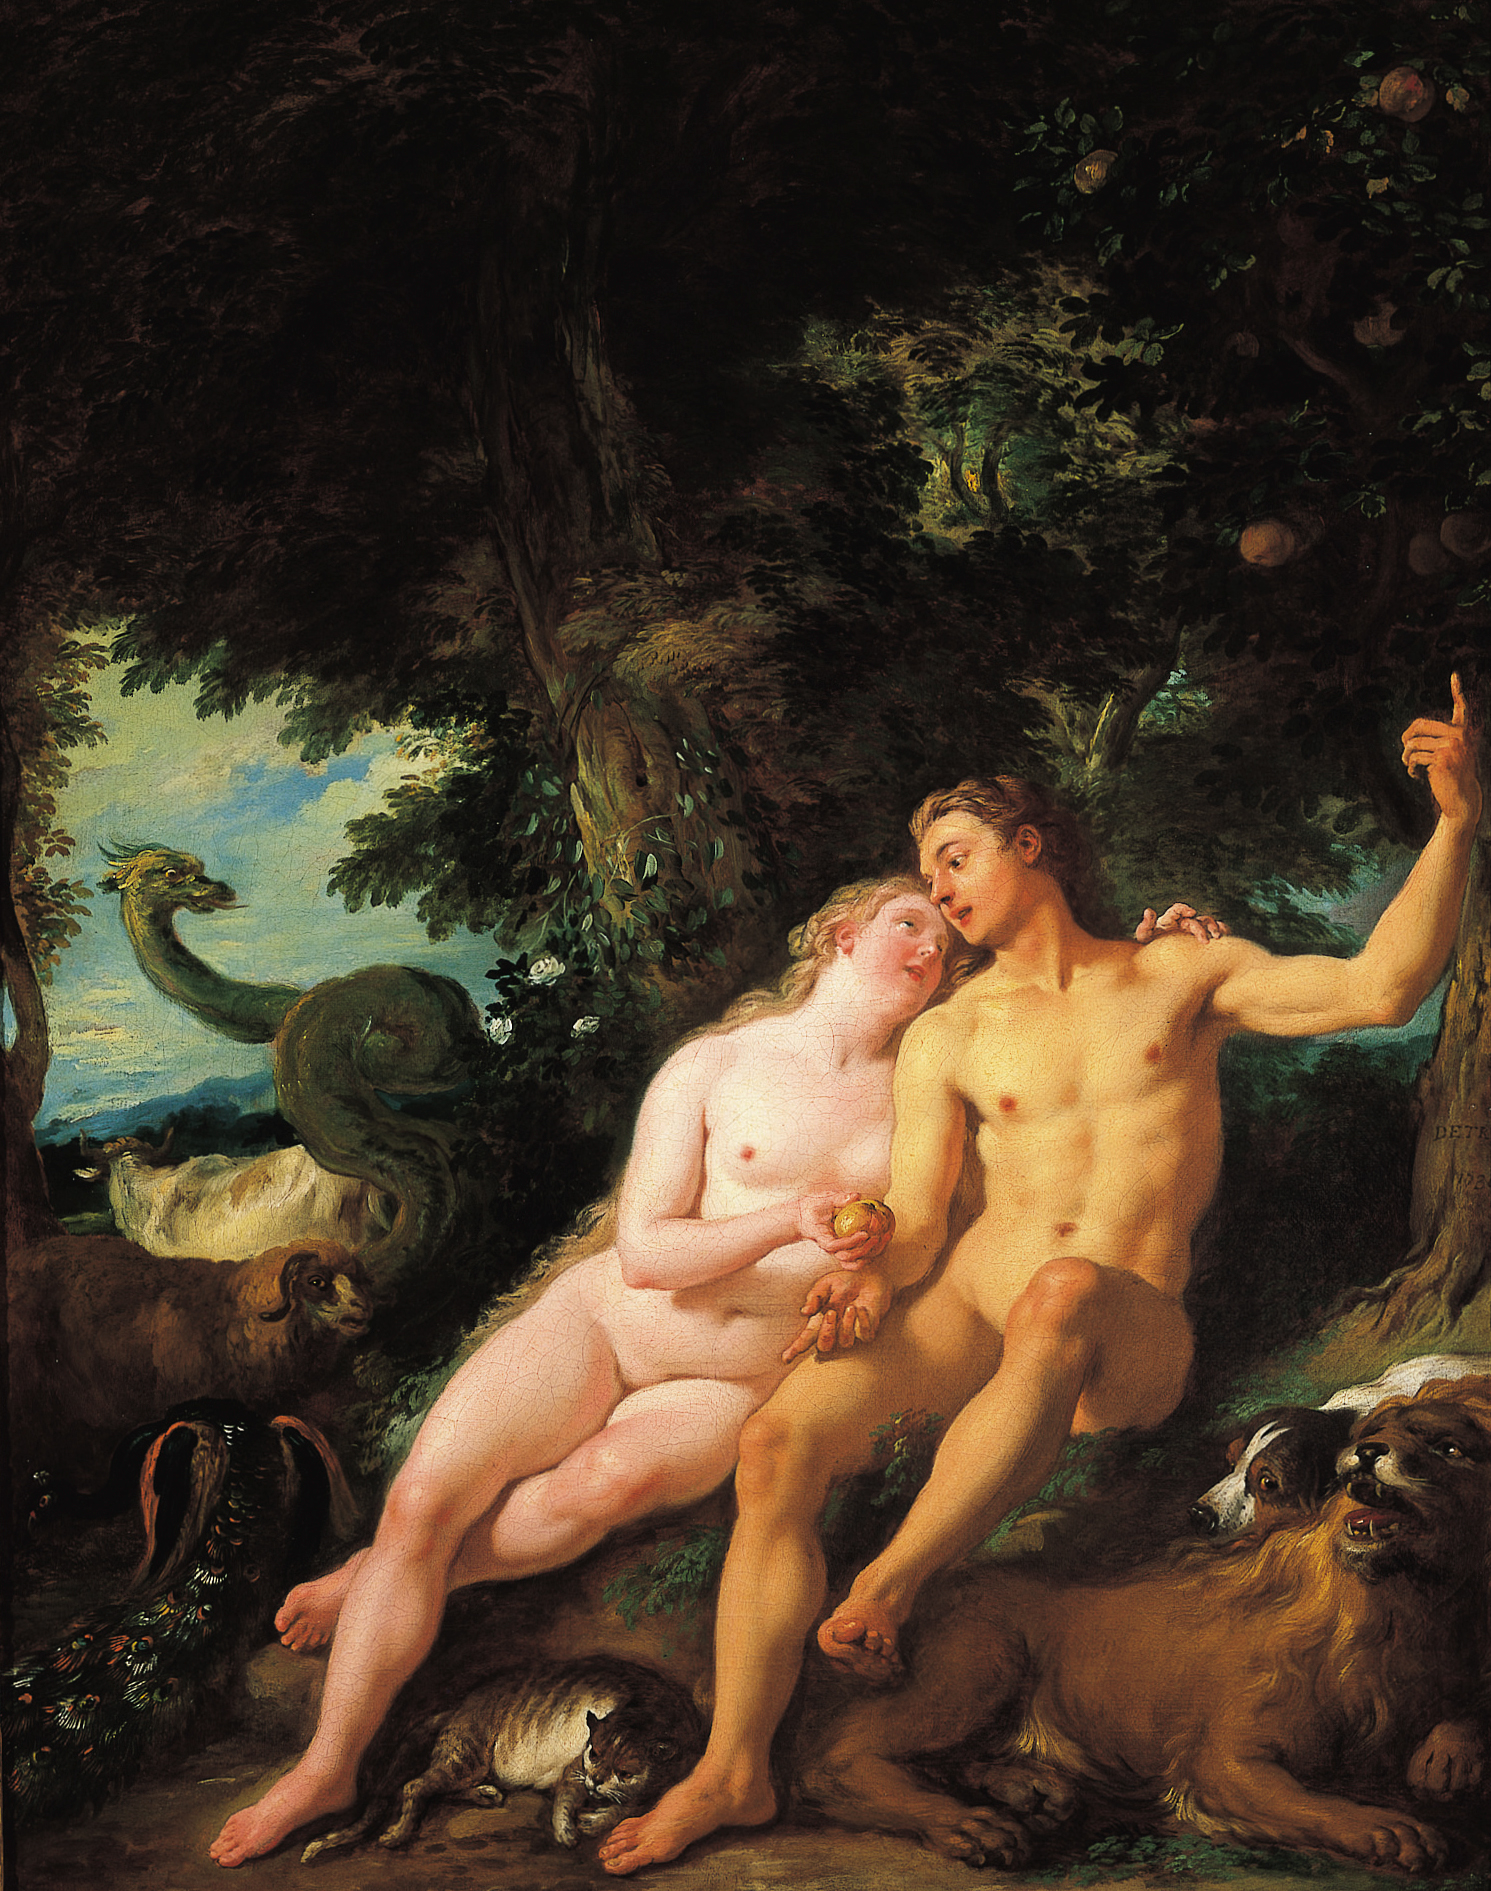 Adam and eve the first fuck - 1 part 2